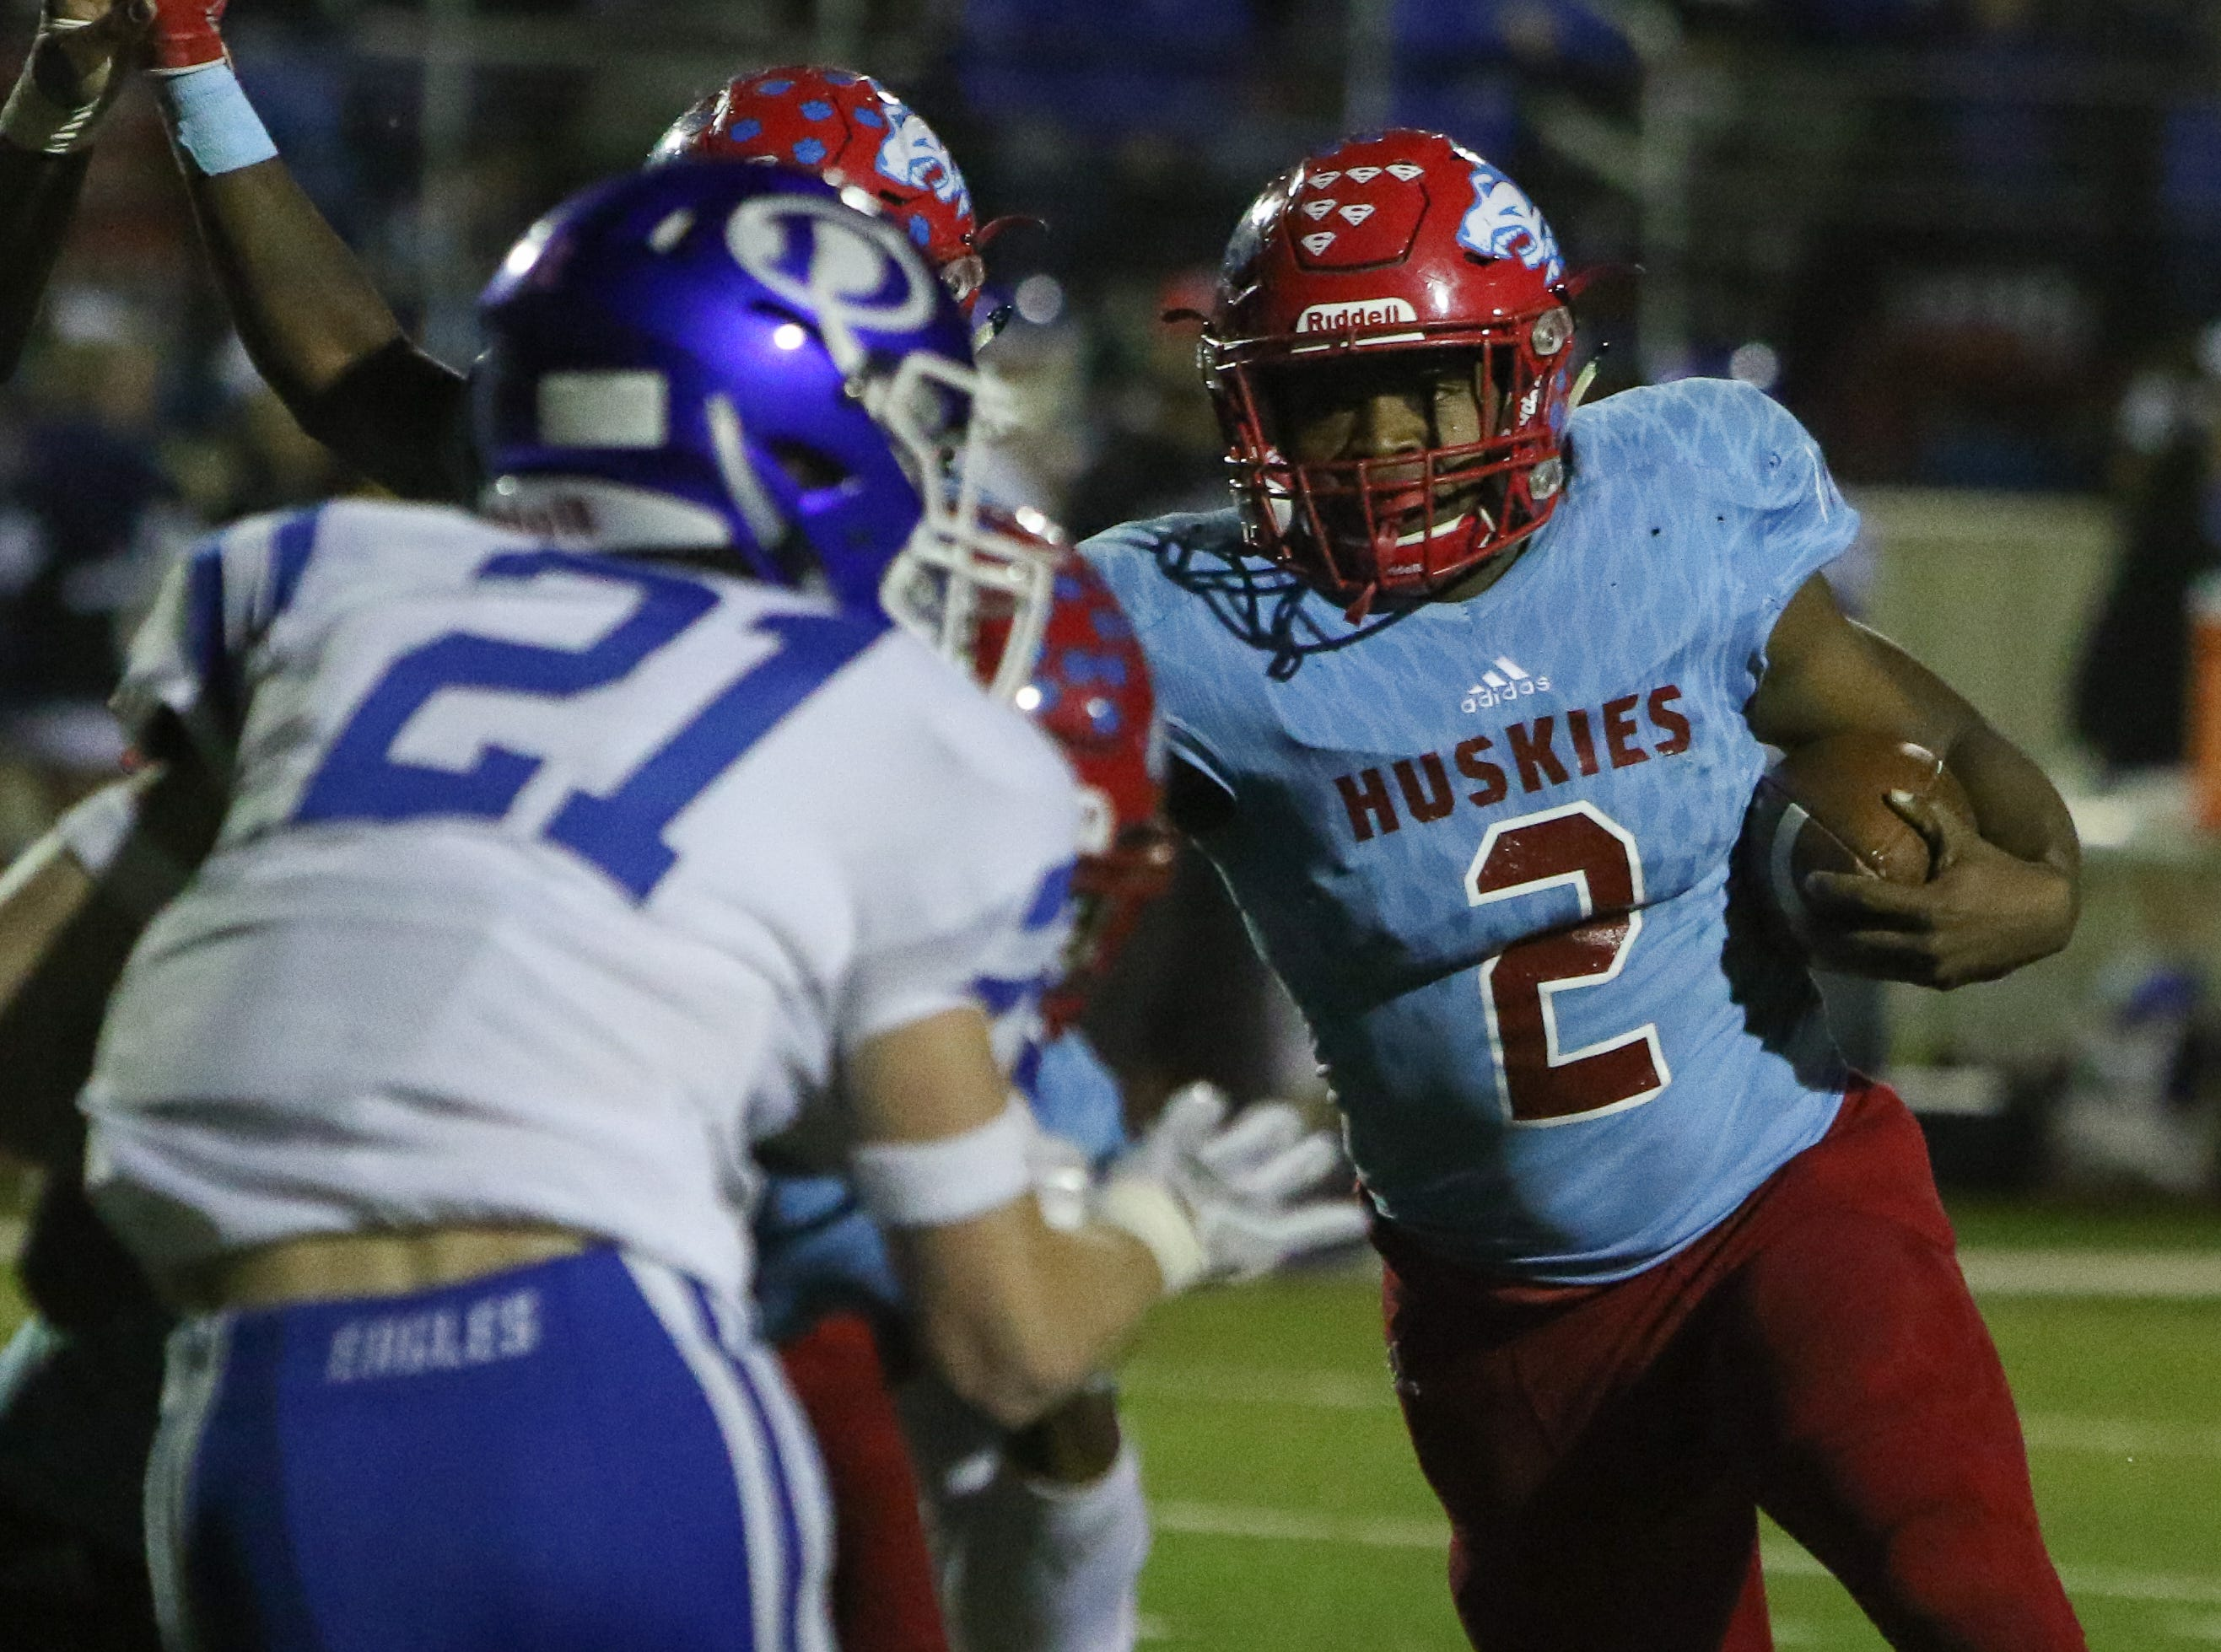 Hirschi's Fred Fleeks runs around the line of scimmage in the playoff game against Decatur Friday, Nov. 30, 2018, at Newton Field in Graham.